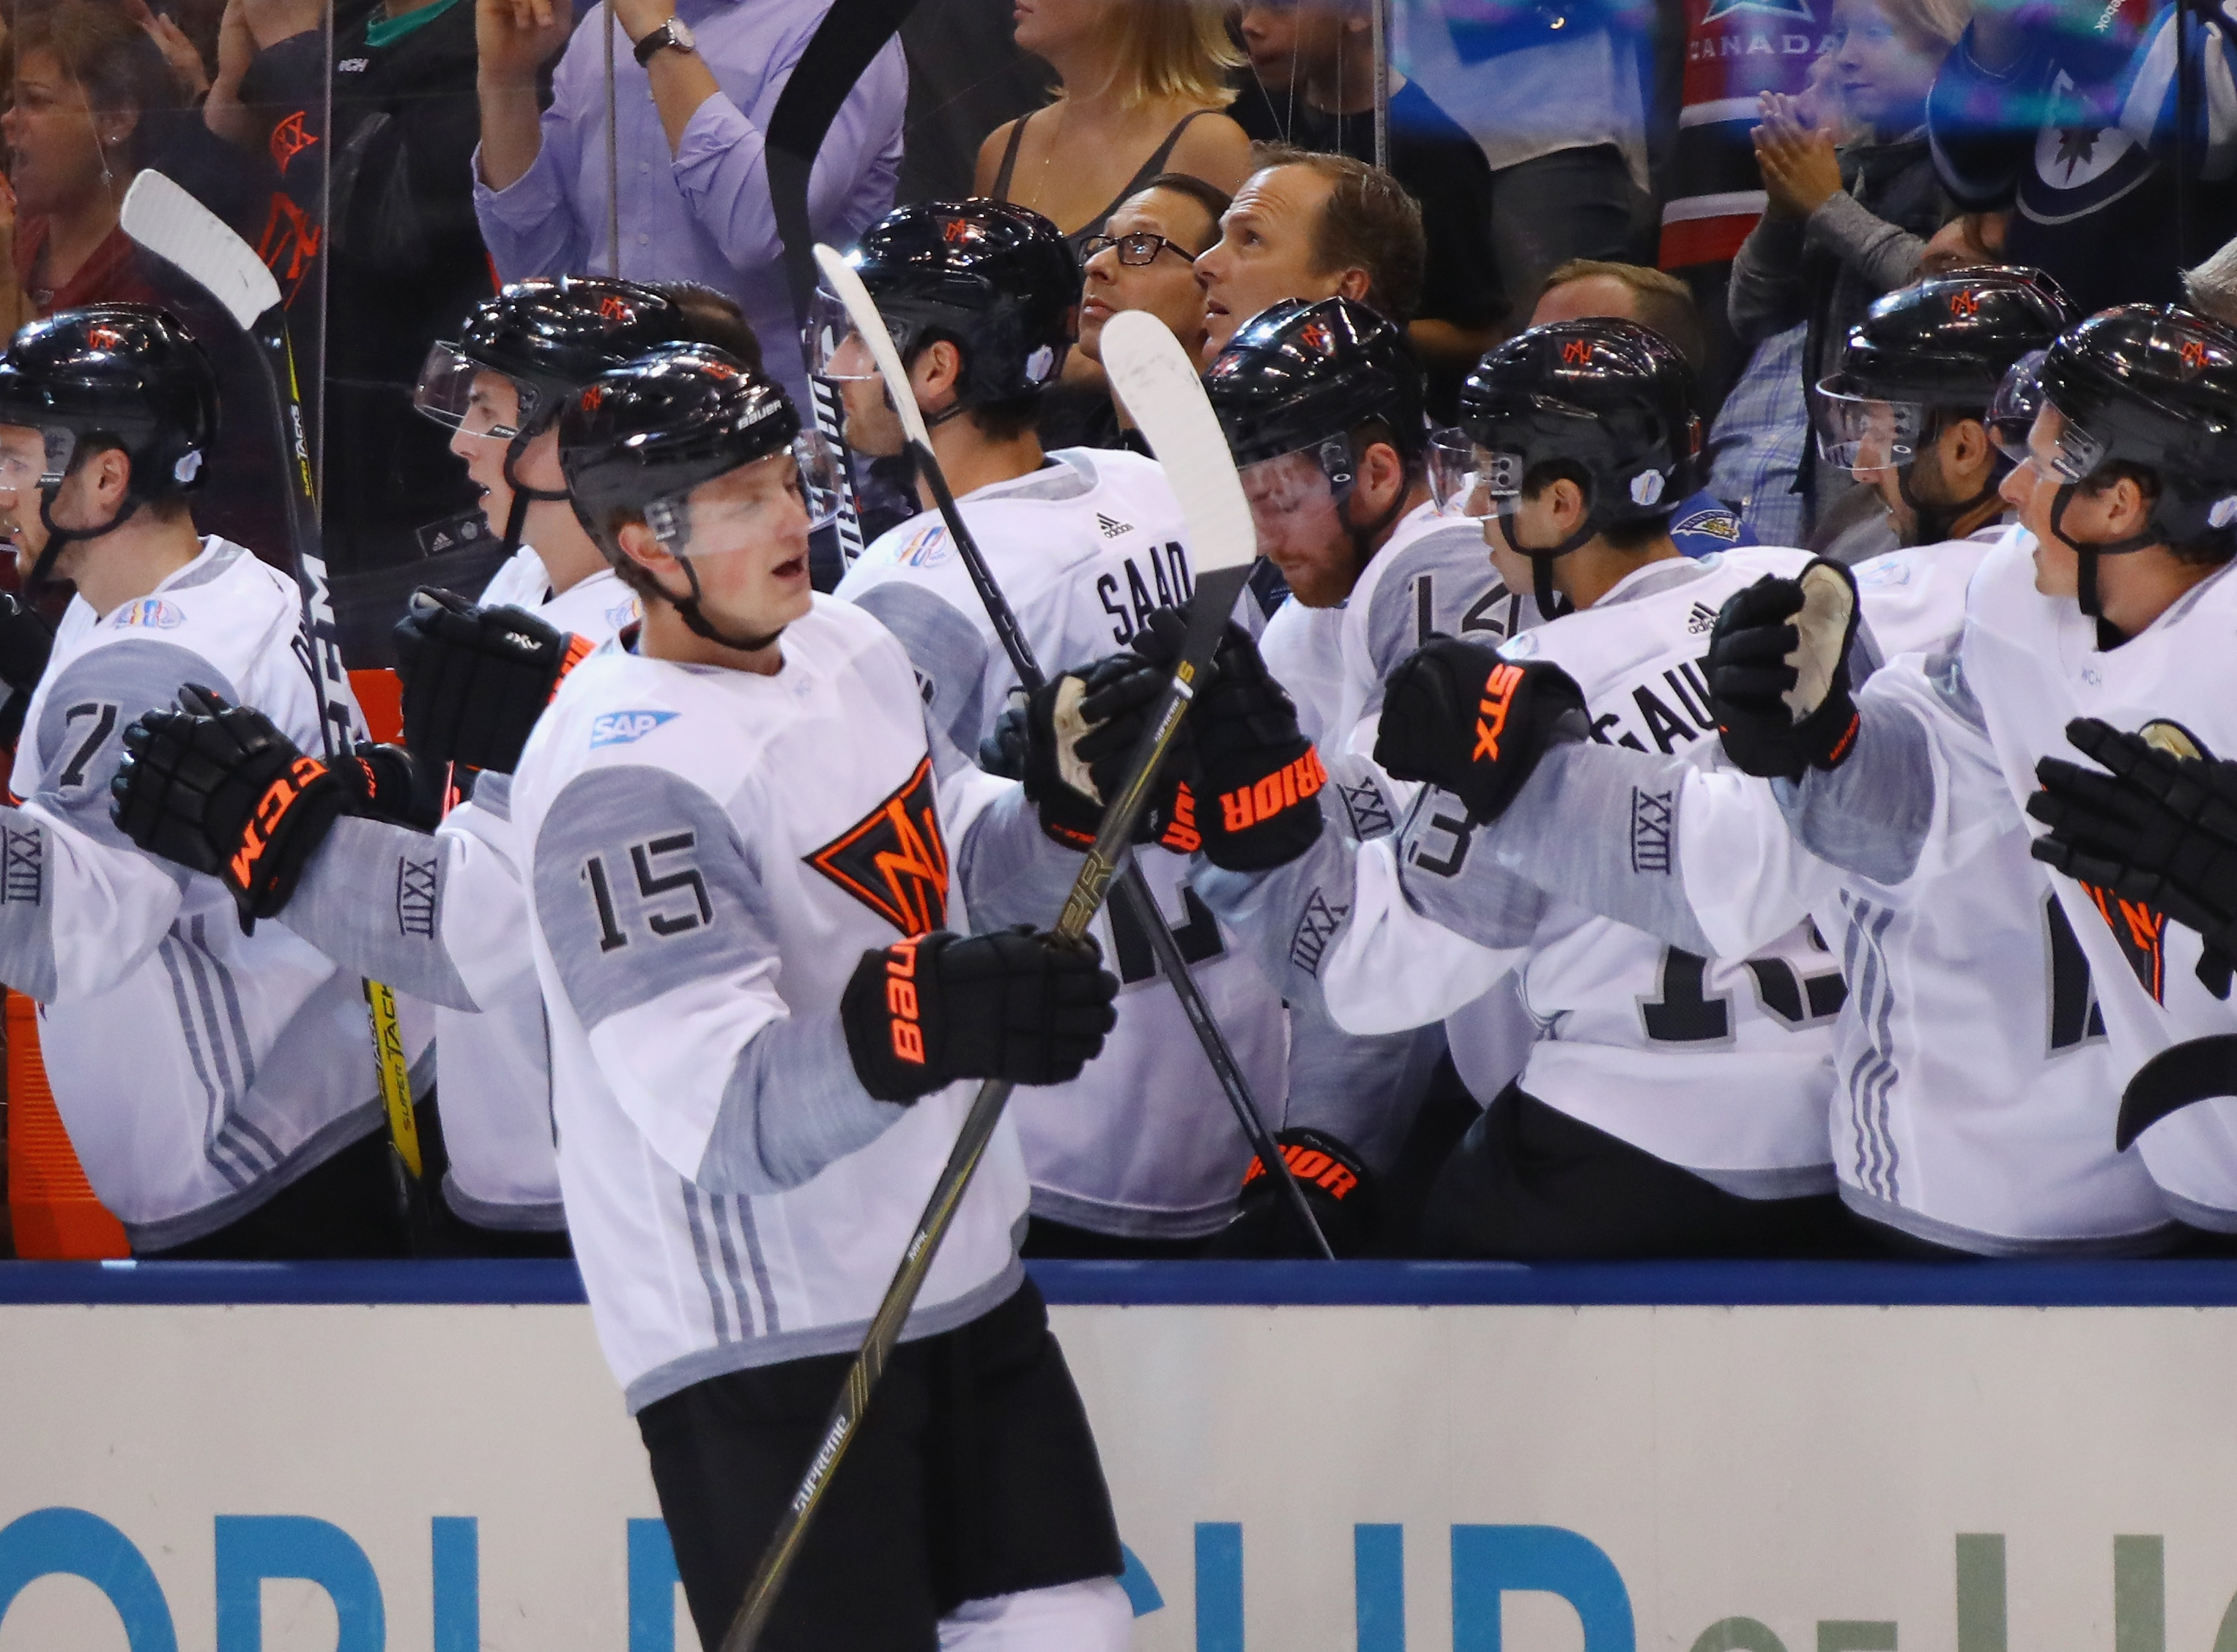 Jack Eichel celebrates his goal at 5:03 of the first period against Team Finland.